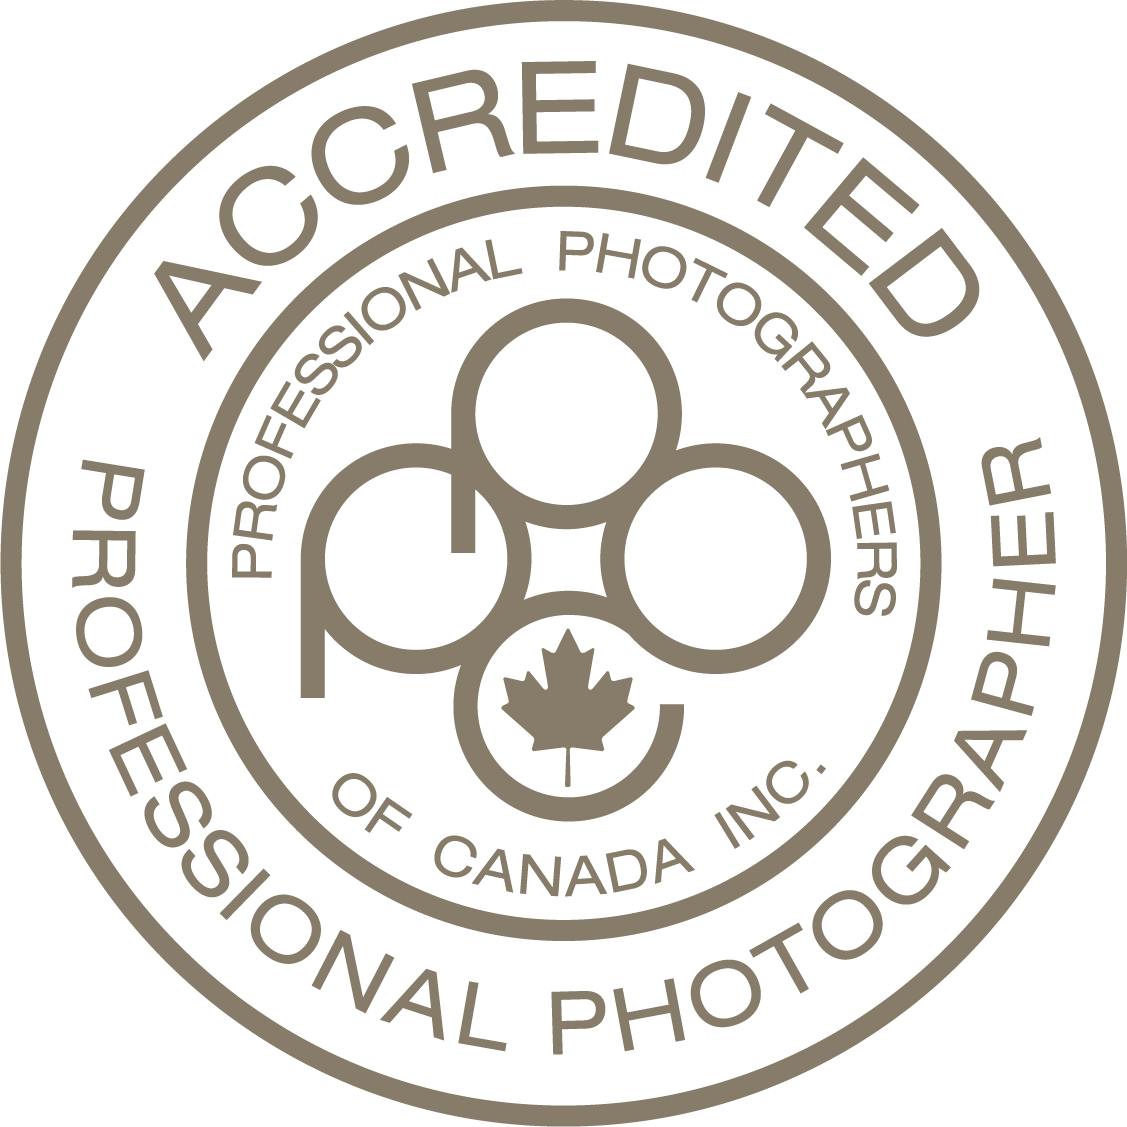 Accredited Professional Photographer, Proud Member, Professional Photographers of Canada